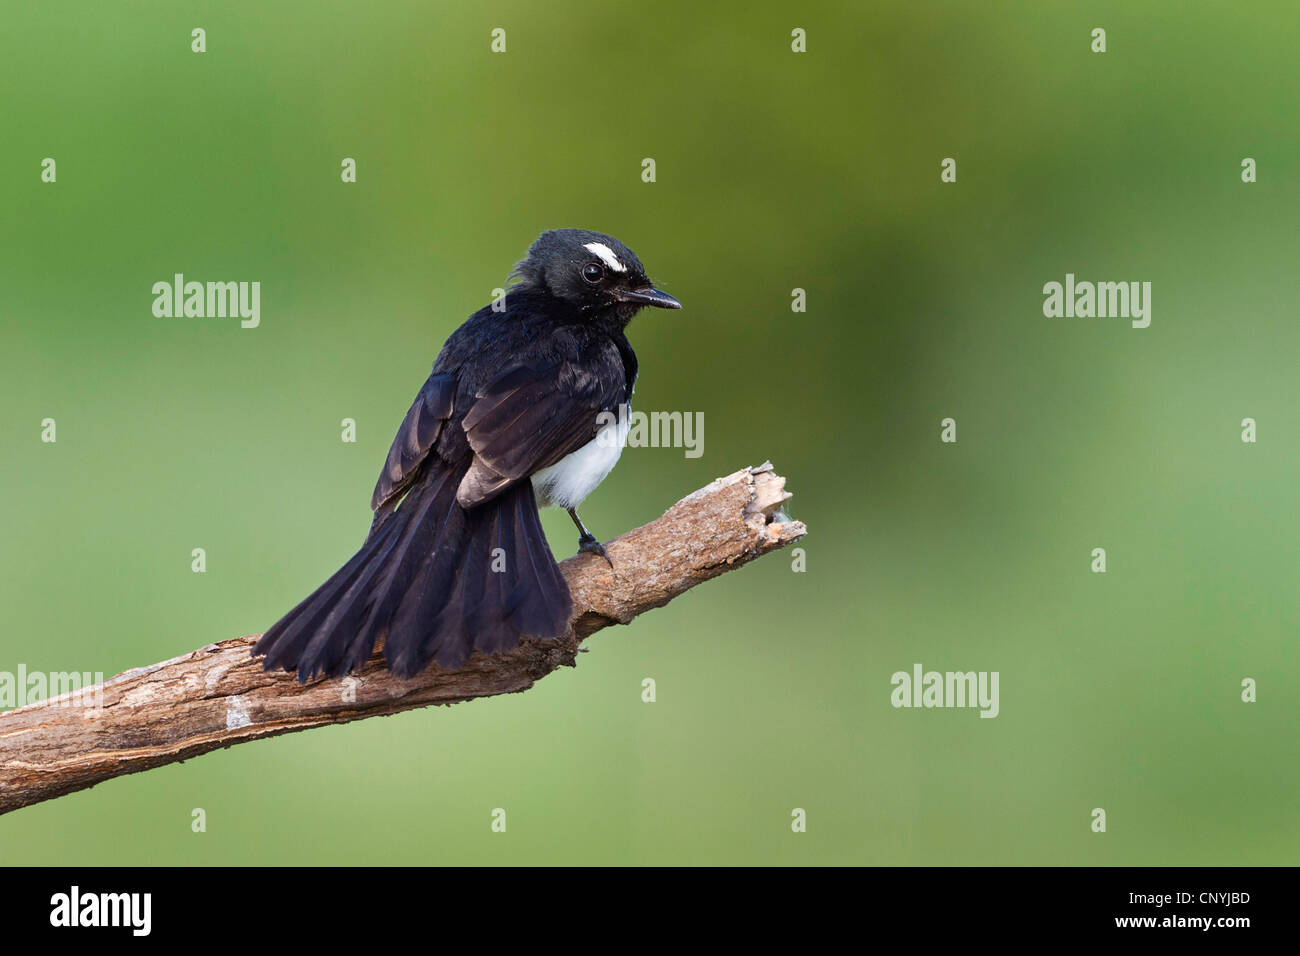 black & white fantail (Rhipidura leucophrys), sitting on a branch, Australia, Queensland Stock Photo